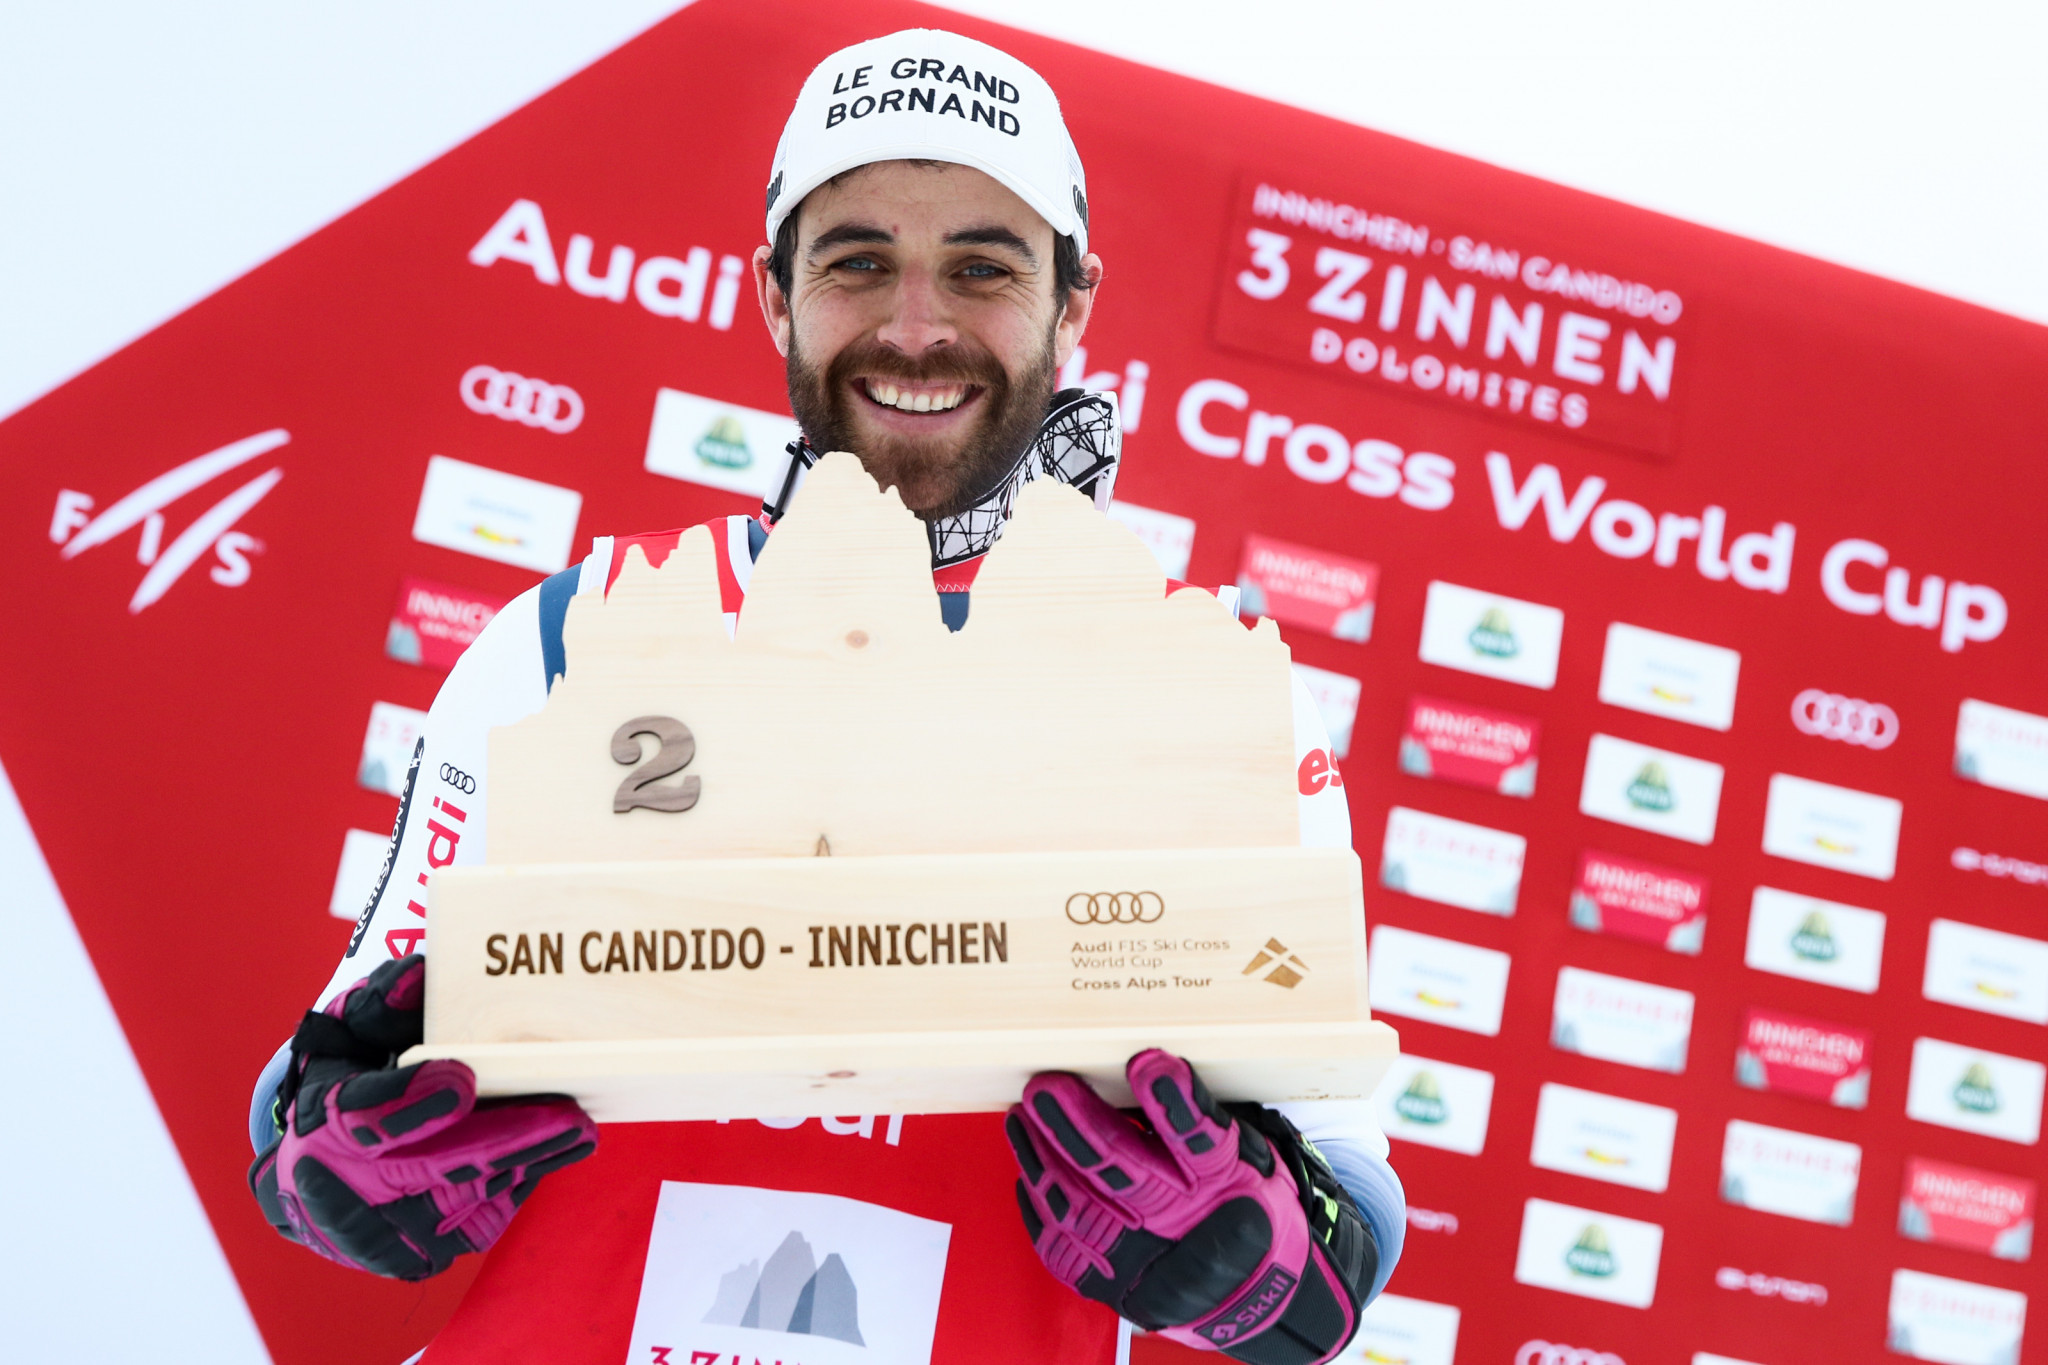 Innichen/San Candido has hosted a Ski Cross World Cup every year since 2009 ©Getty Images